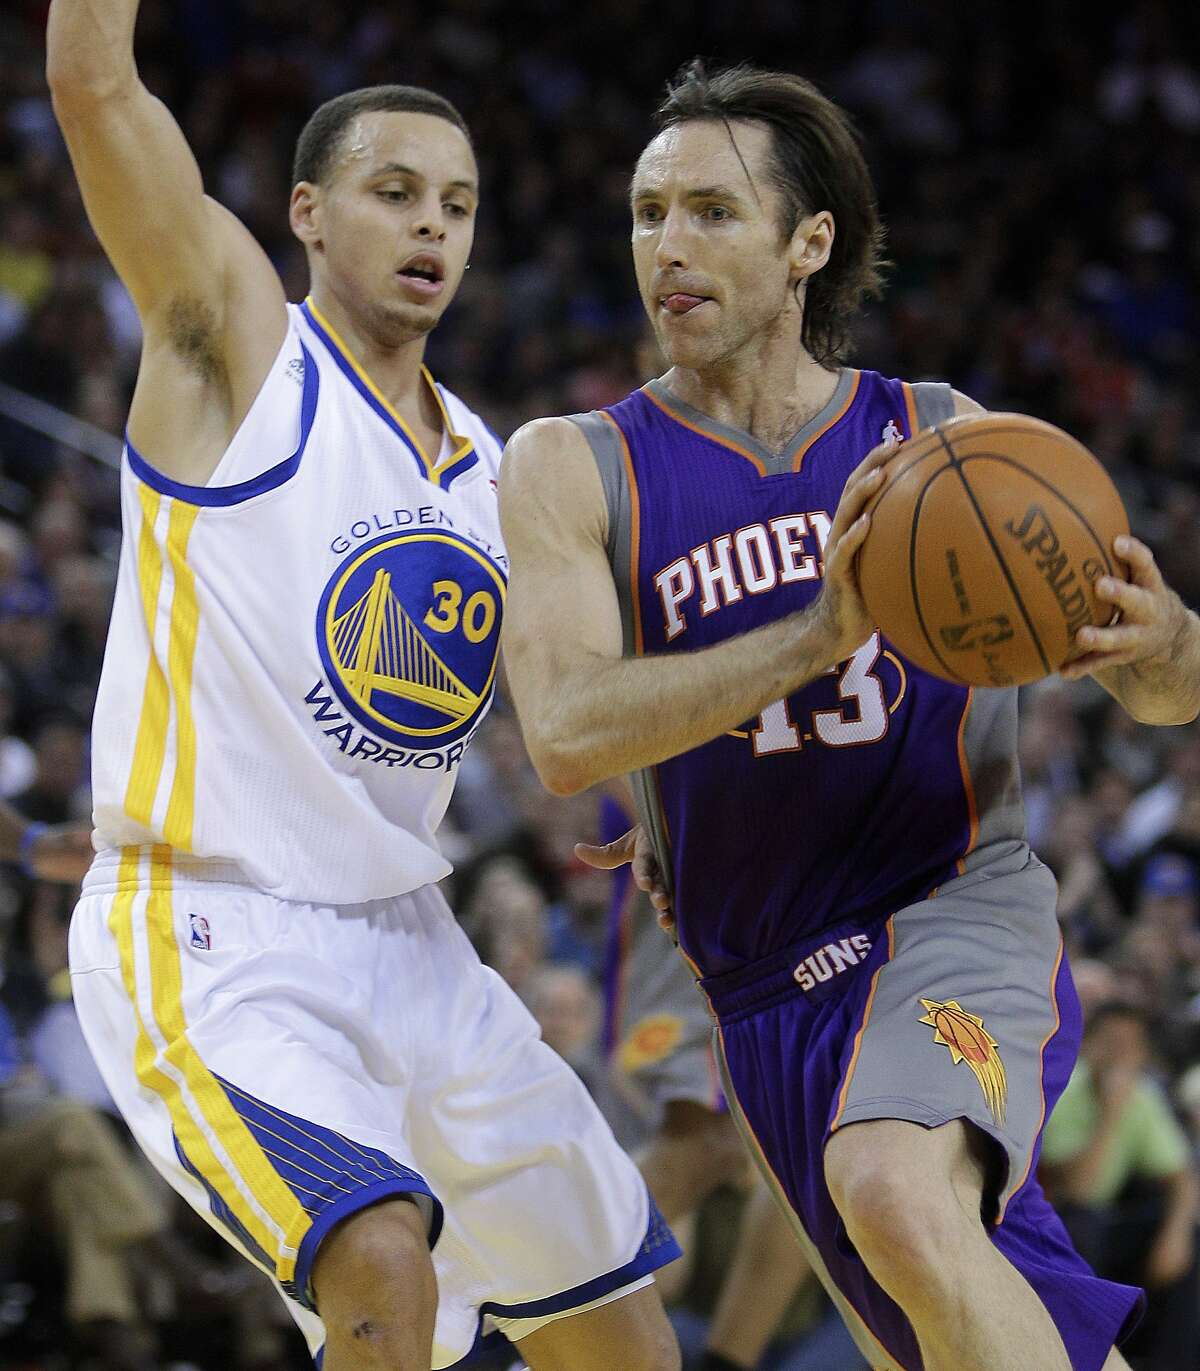 Phoenix Suns' Steve Nash, right, drives to the basket as Golden State Warriors' Stephen Curry defends on Feb. 7, 2011, in Oakland.